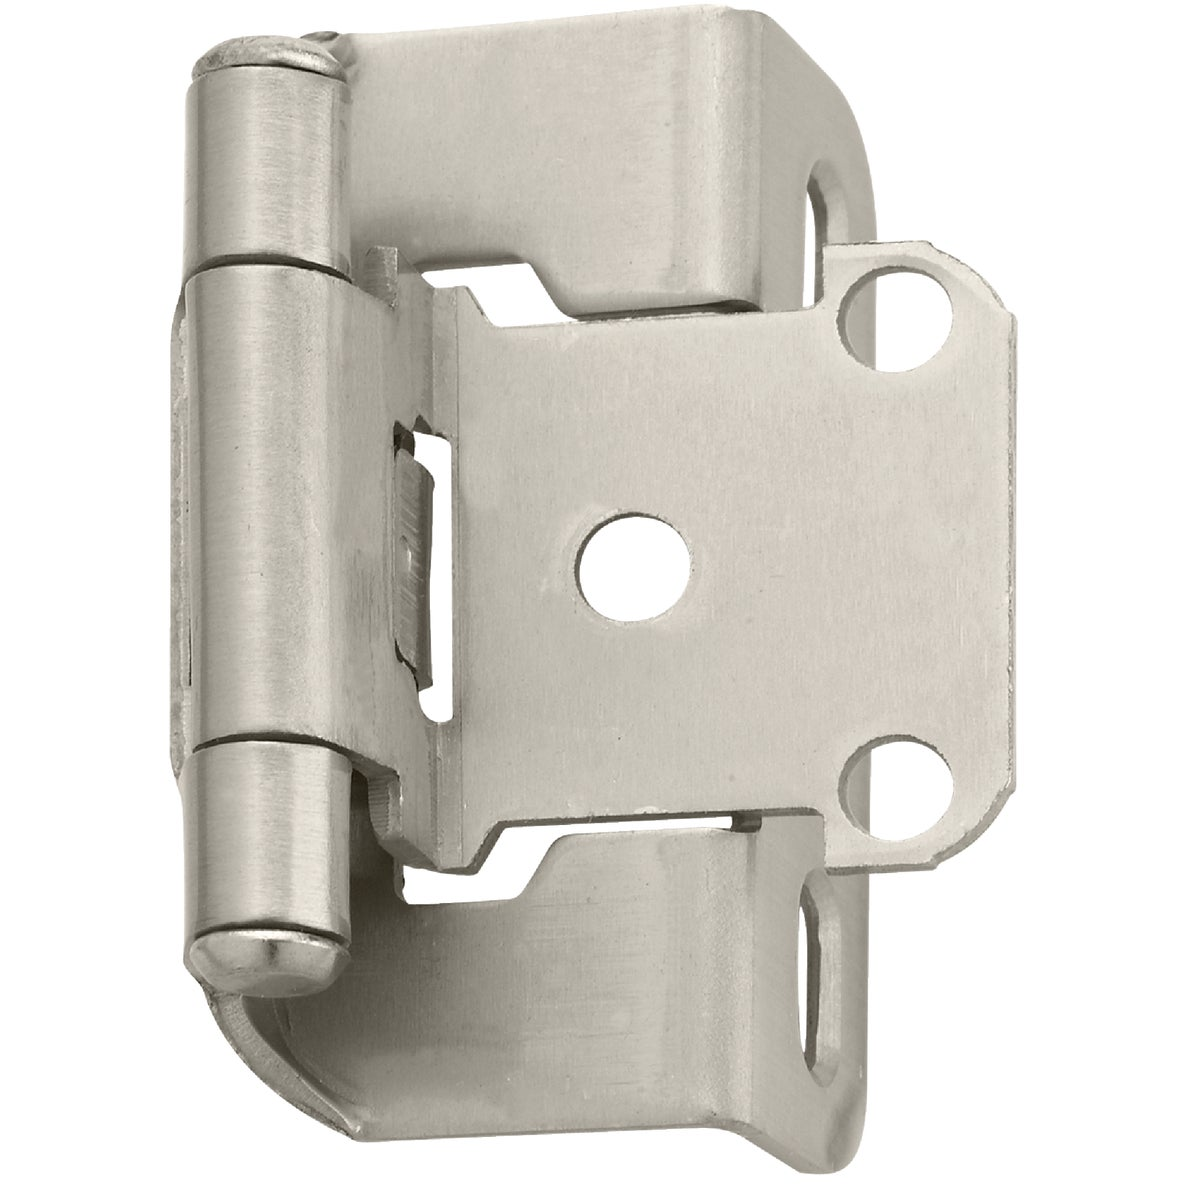 SATIN NICKEL SC HINGE - BP7550-G10 by Amerock Corporation